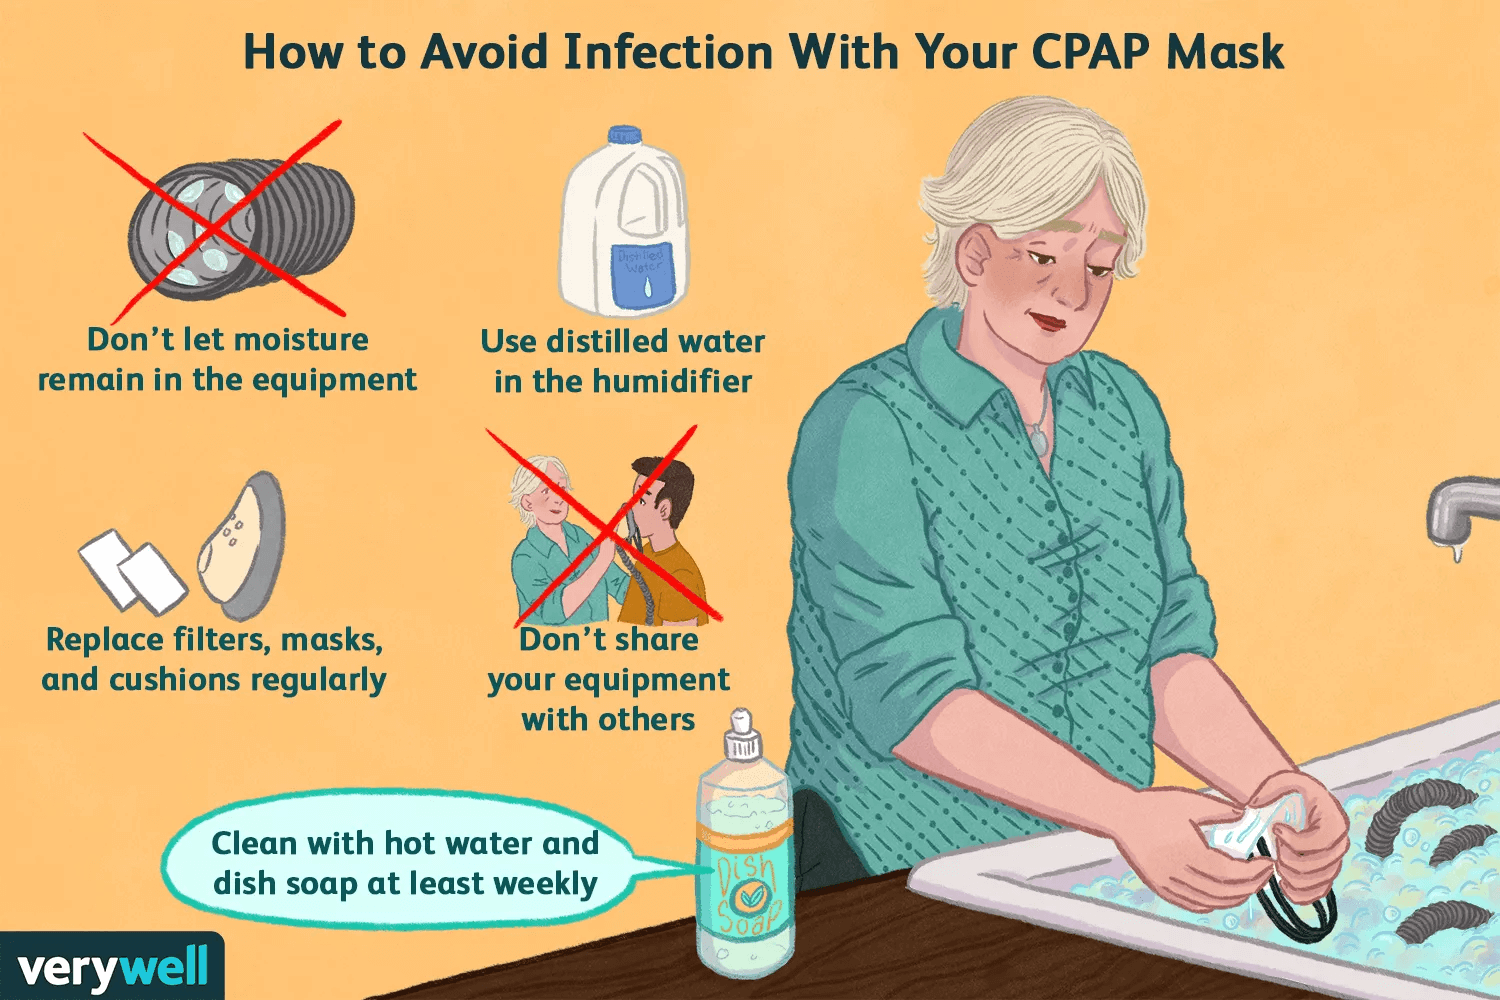 A diagram explaining how to avoid infection with your CPAP mask.